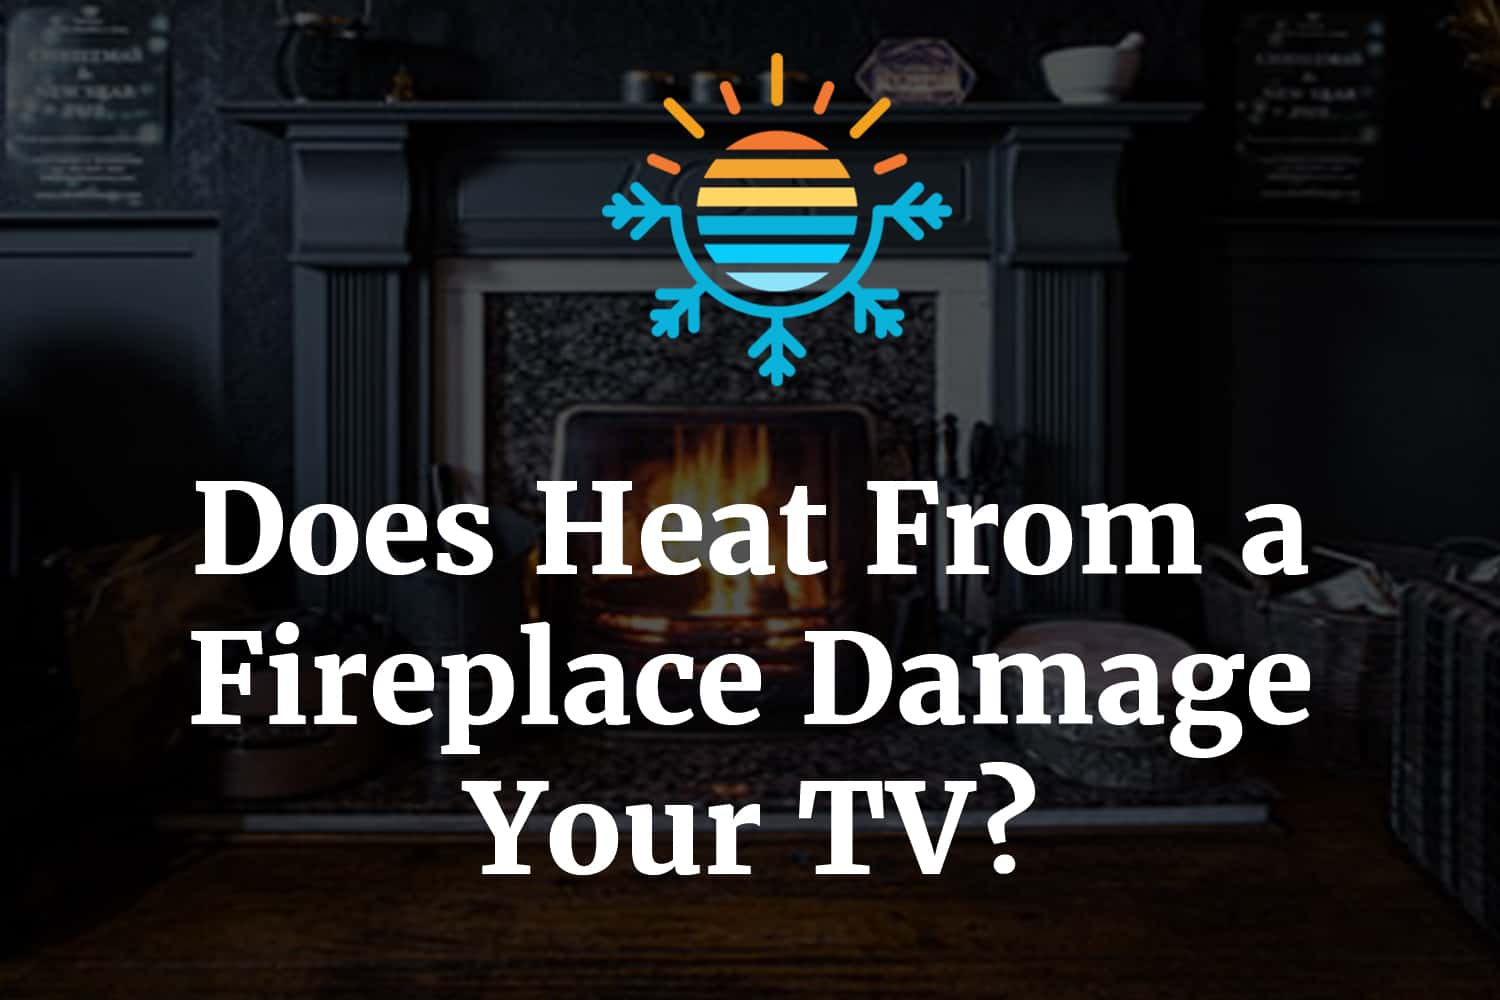 Does Heat From Fireplace damage your TV